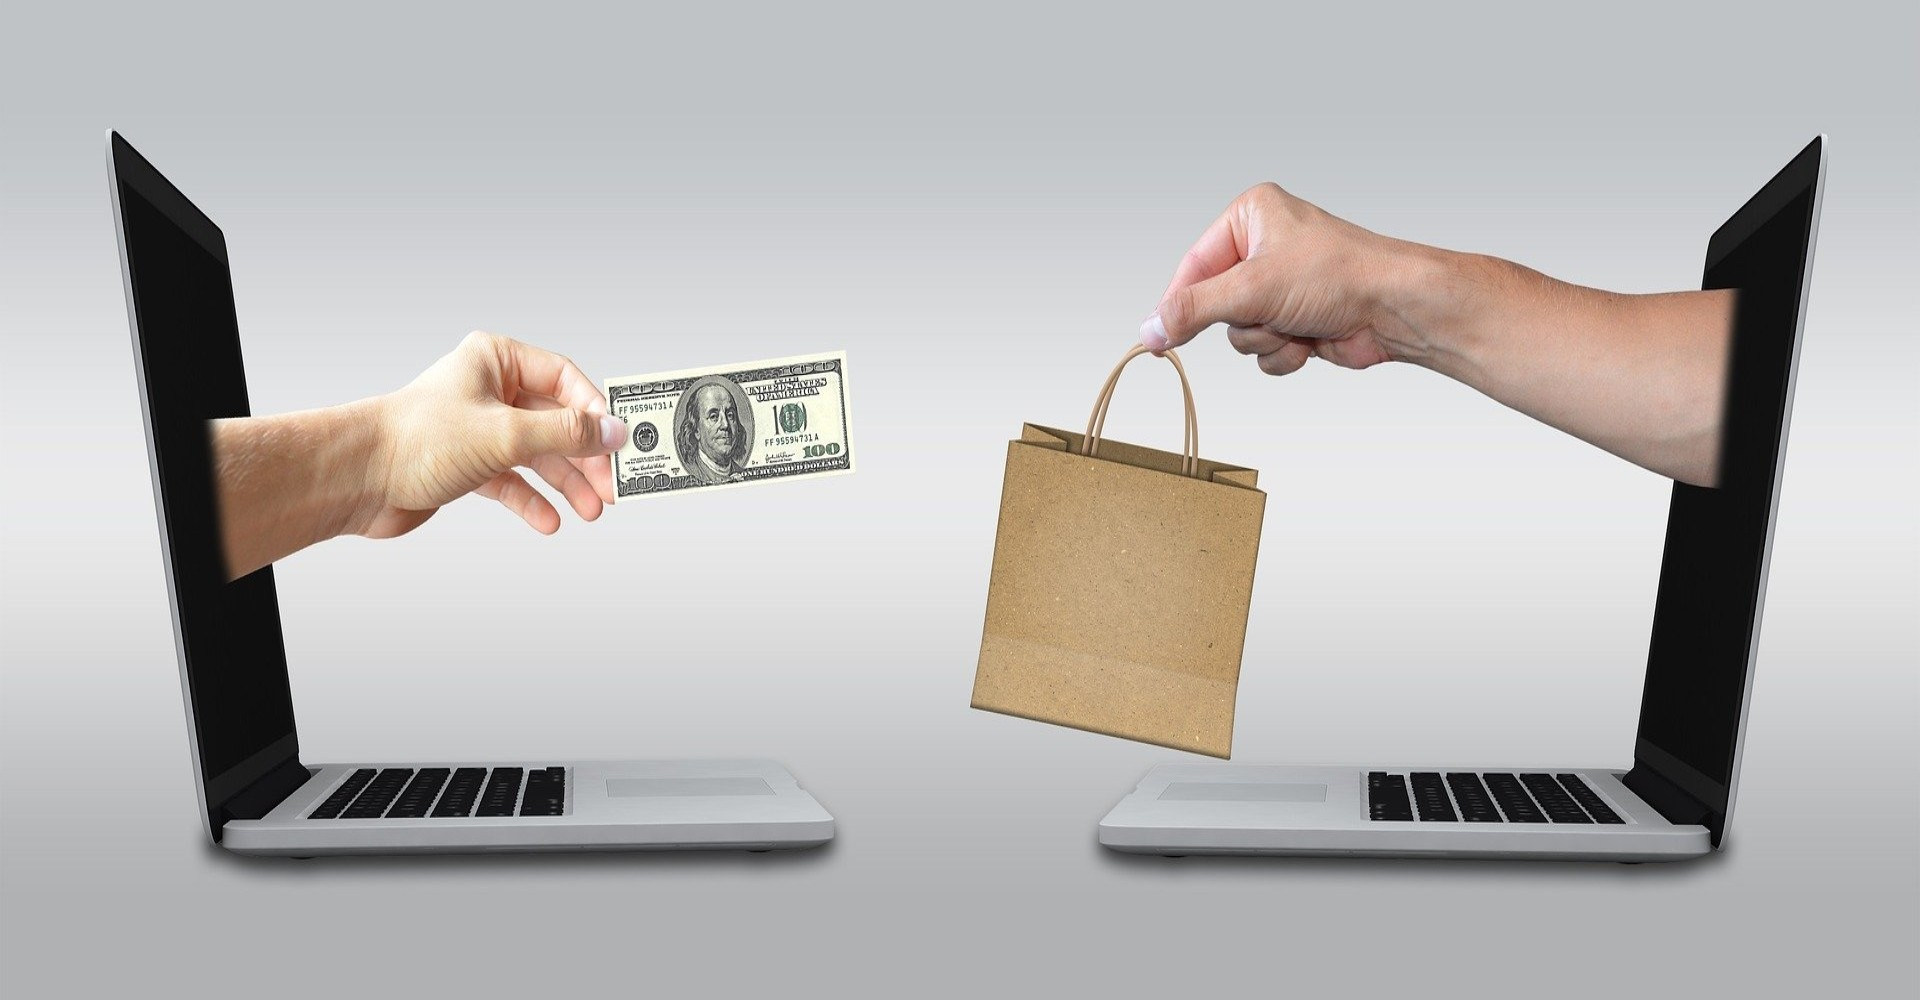 Two arms extending out of two laptops to exchange goods with money